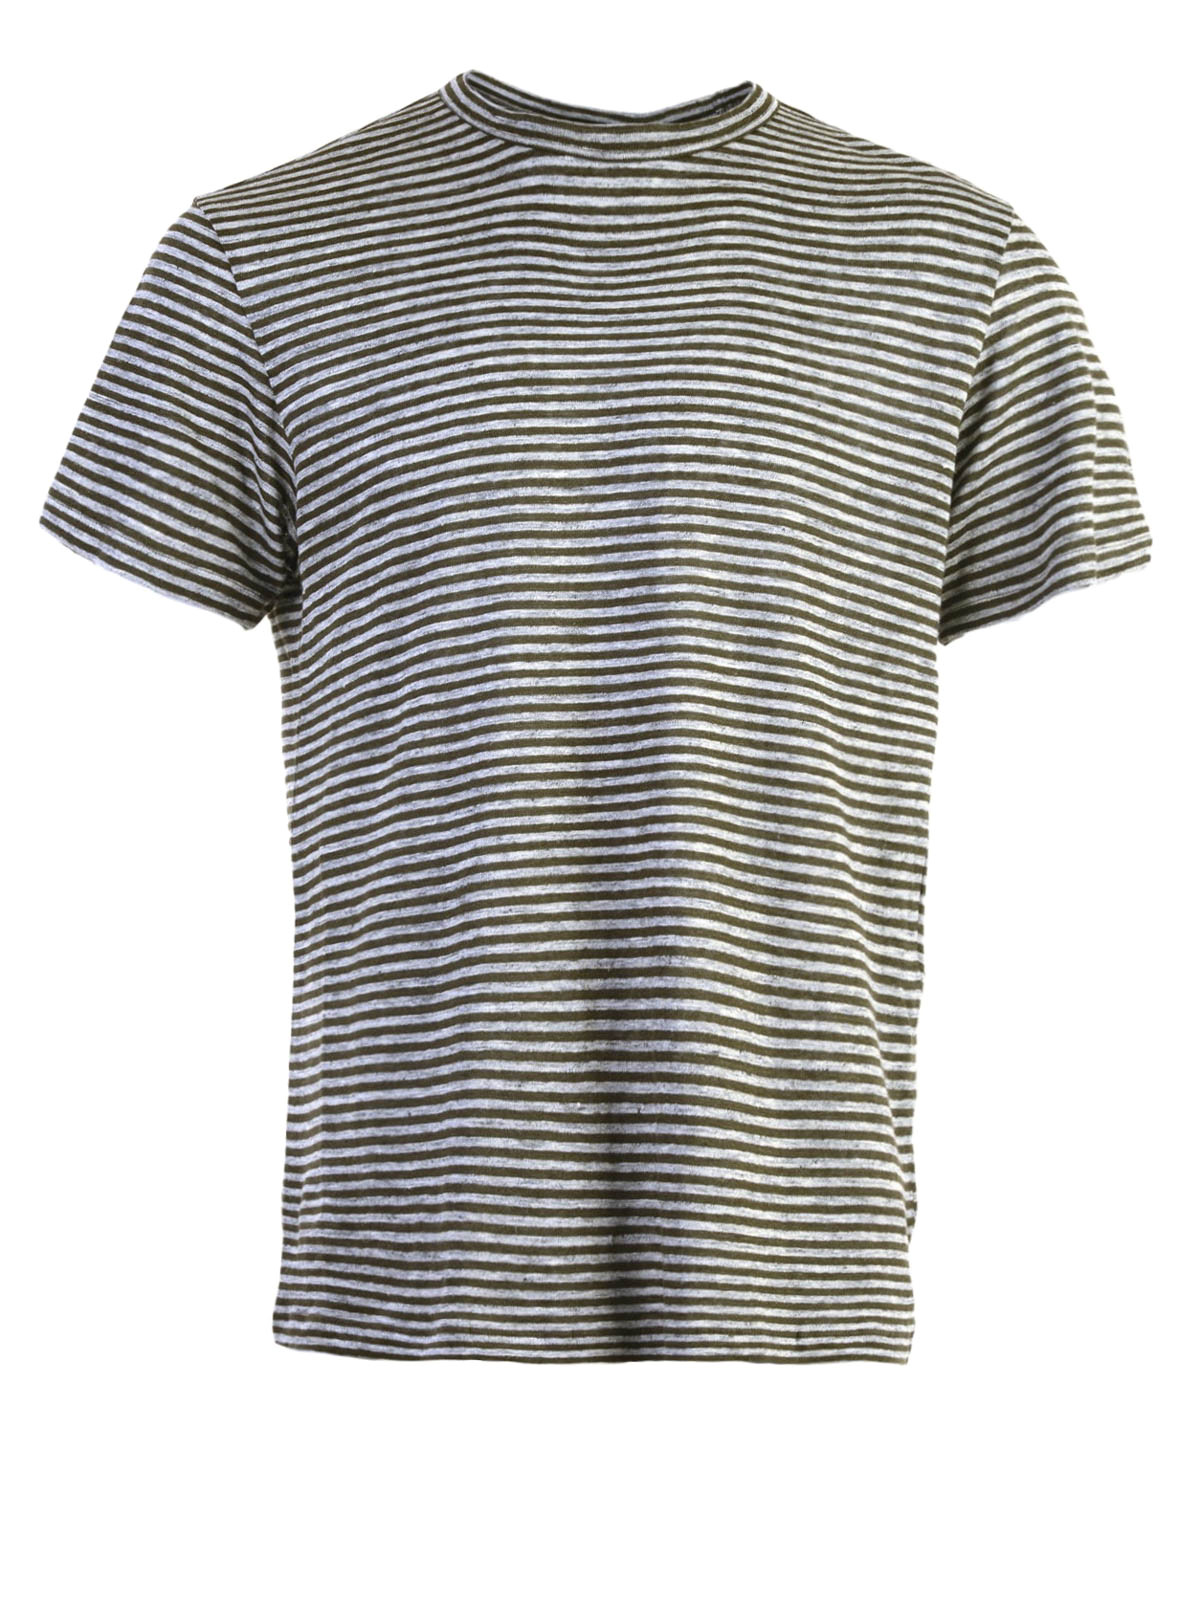 Linen Blend Striped T Shirt By Alexander Wang T Shirts